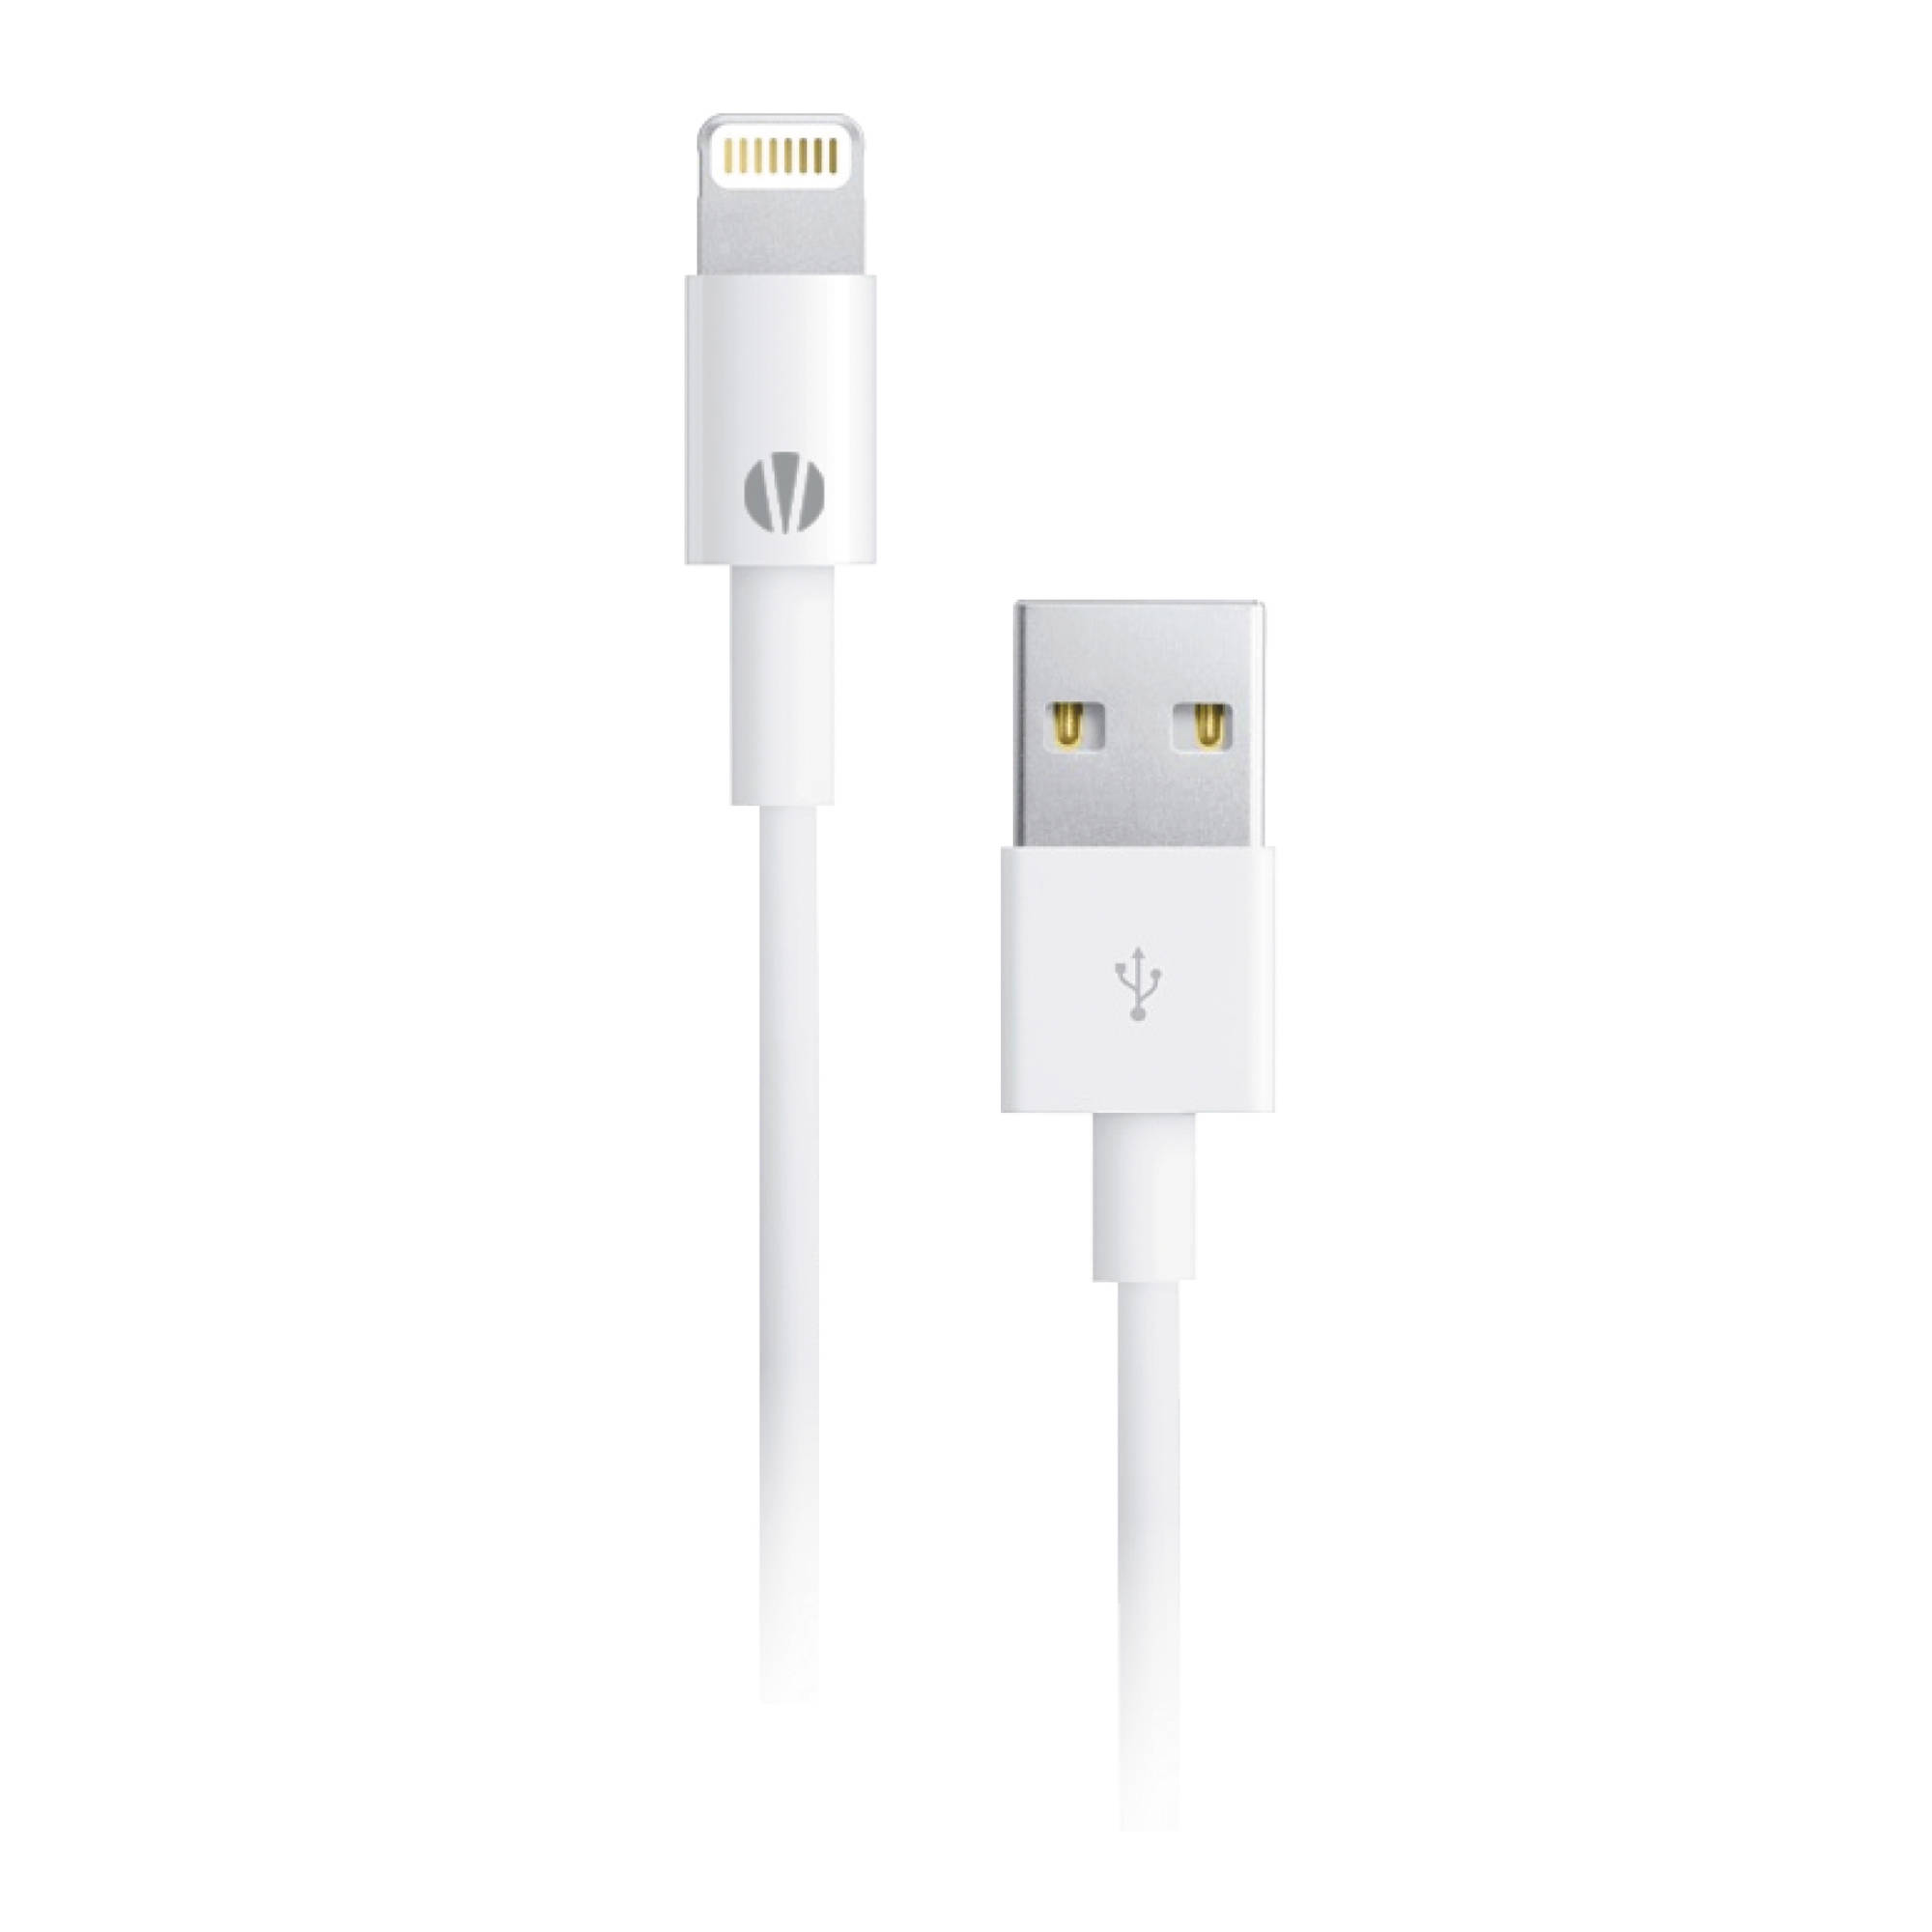 Iphone Hdmi Cable Walmart